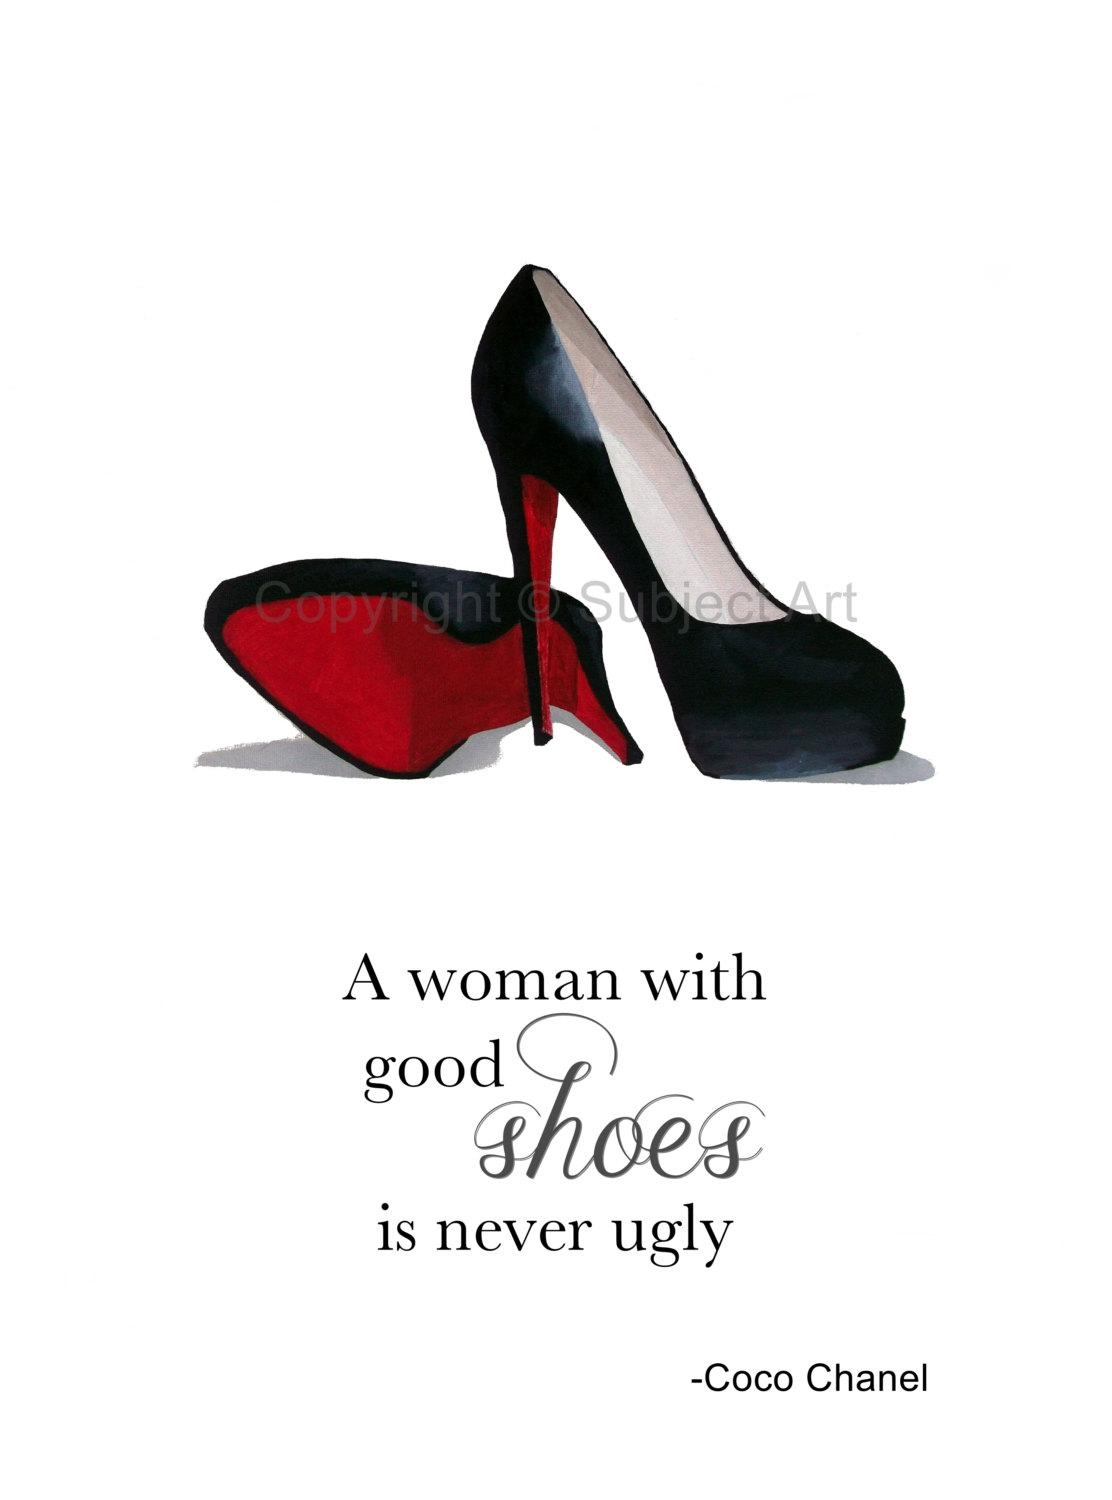 Christian Louboutin Black Shoes Art Print Coco Chanel Quote For Coco Chanel Quotes Framed Wall Art (Image 8 of 20)